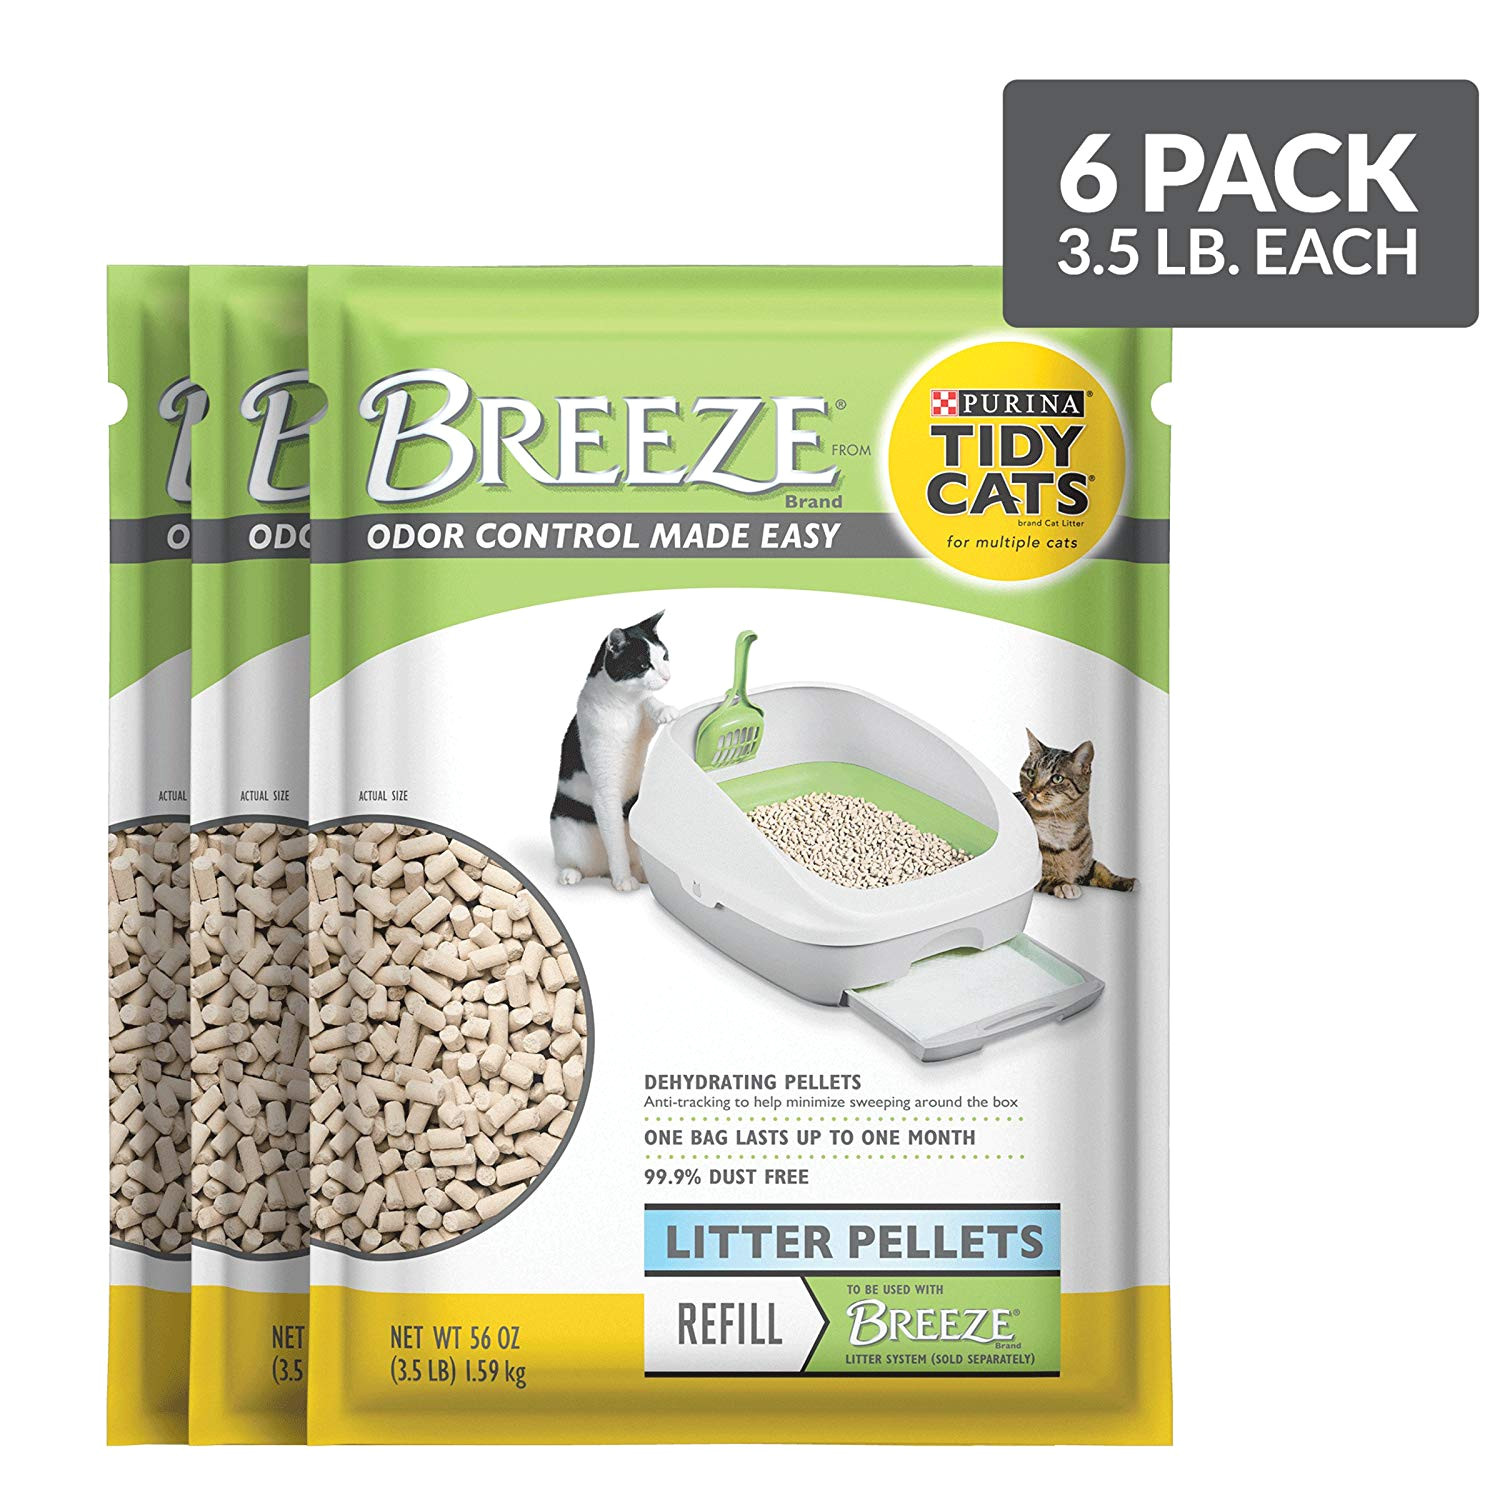 amazon com purina tidy cats breeze pellets refill cat litter 6 3 5 lb pouches pet litter pet supplies